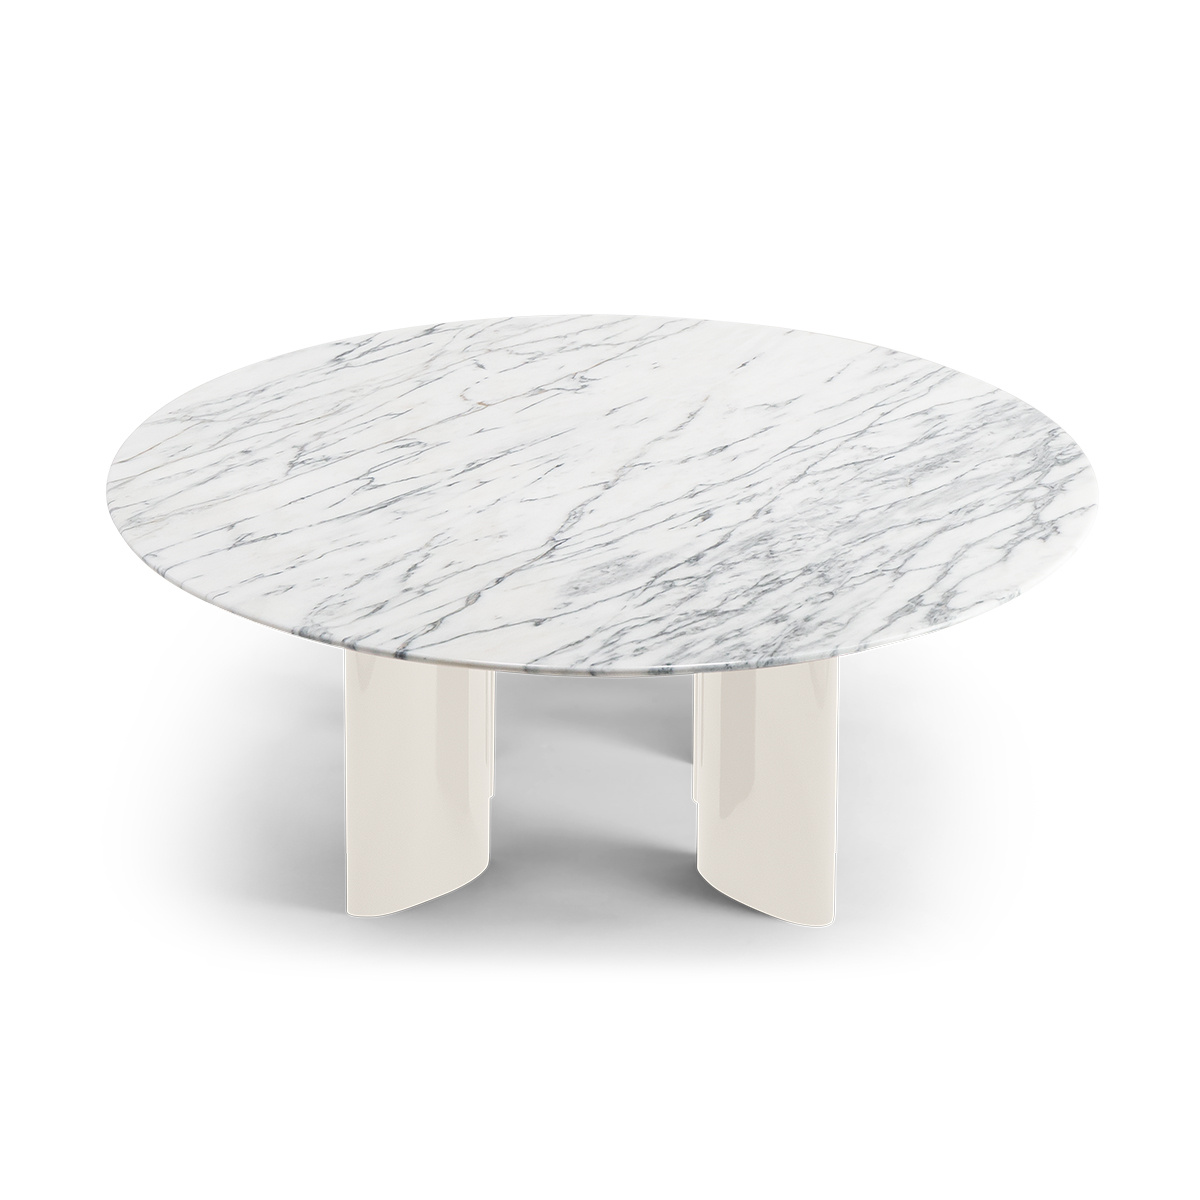 Cream And White Marble Coffee Table Carlotta The Socialite Family